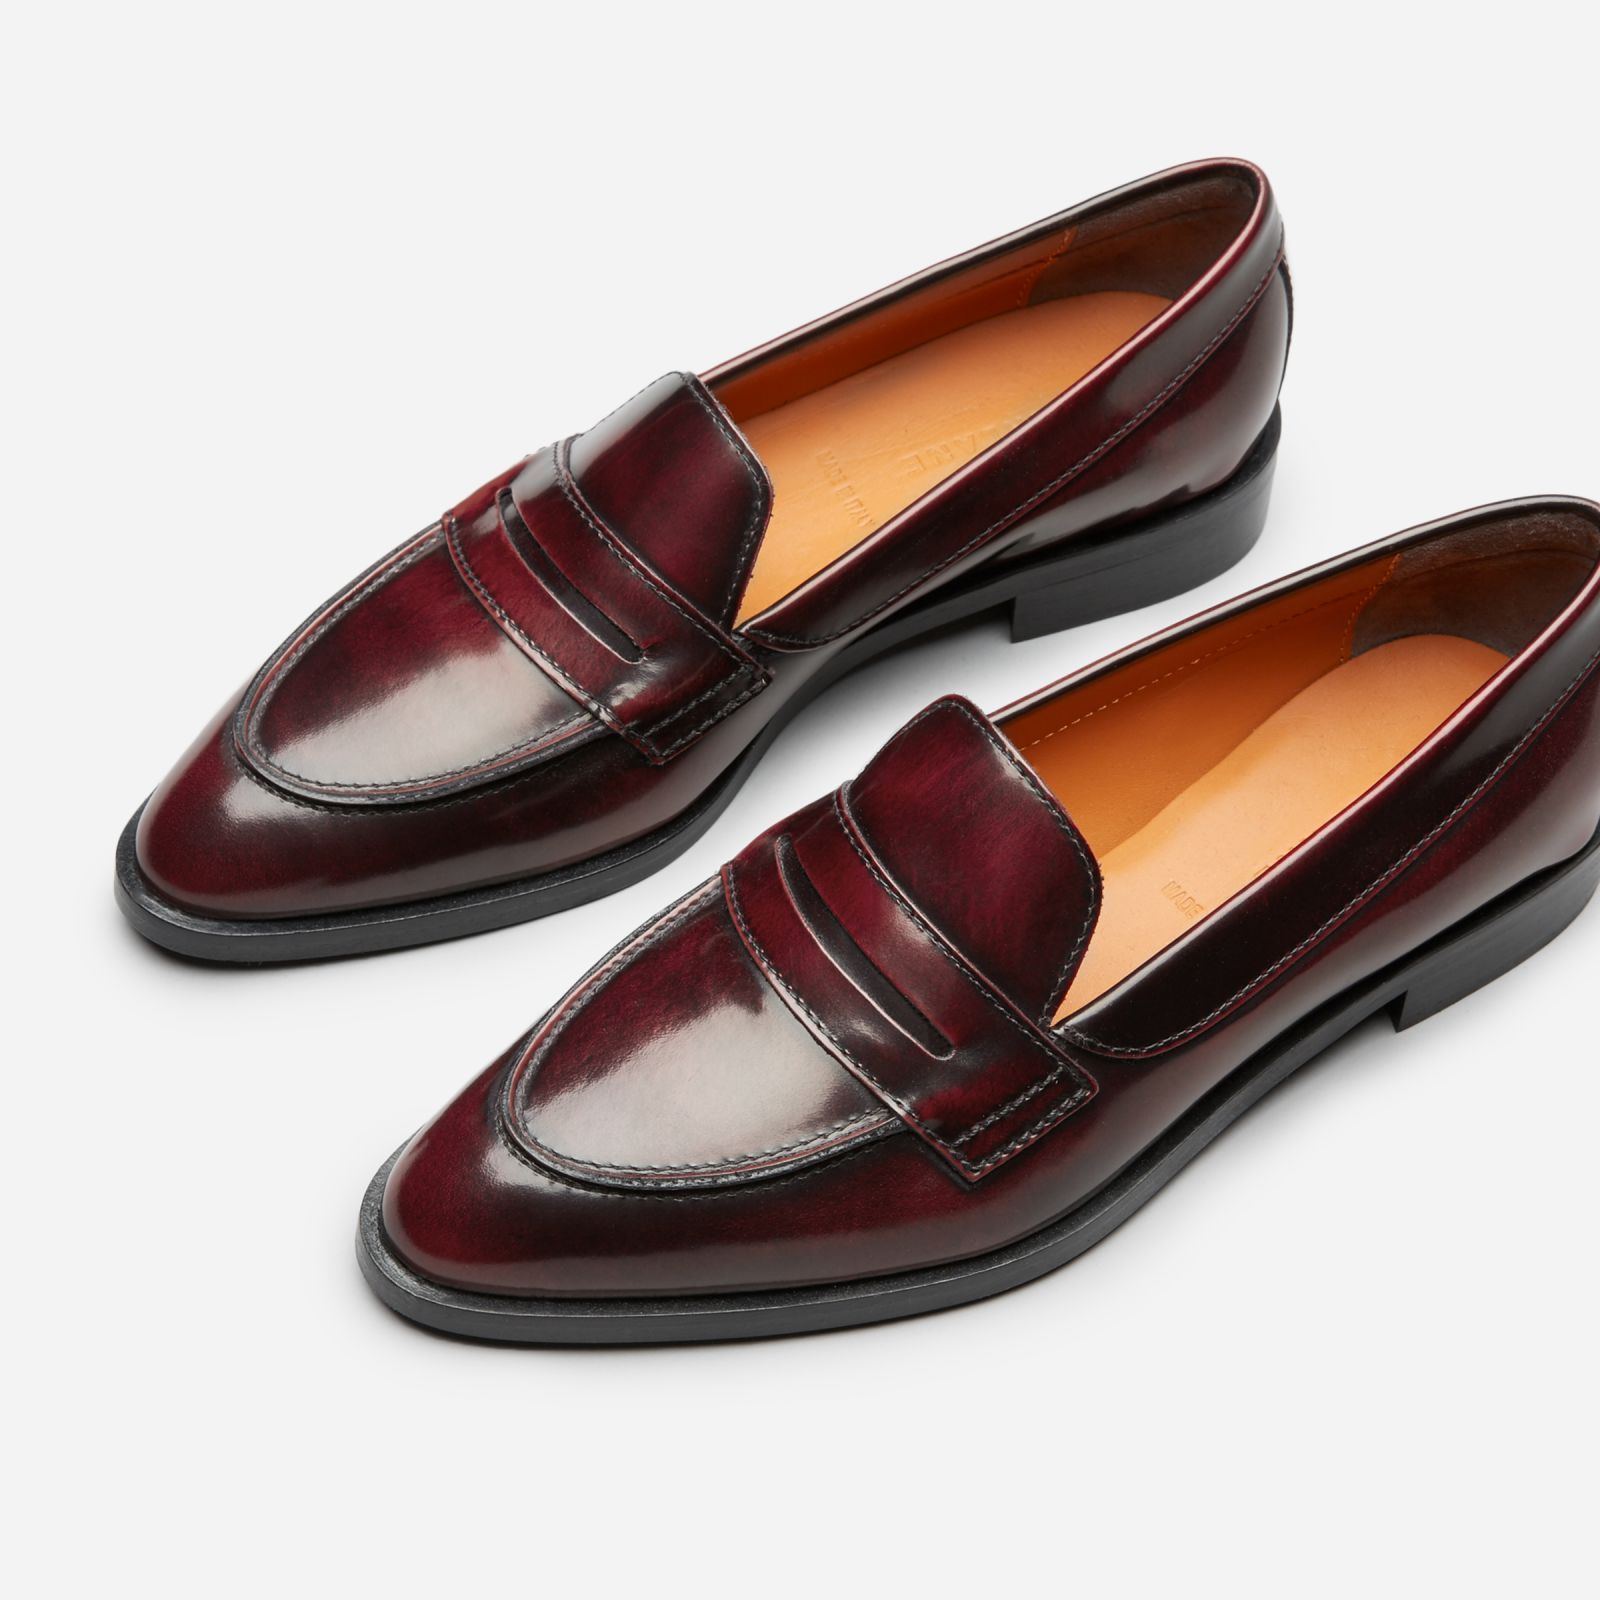 92d950c8f54 Women s Penny Loafers by Everlane in Oxblood